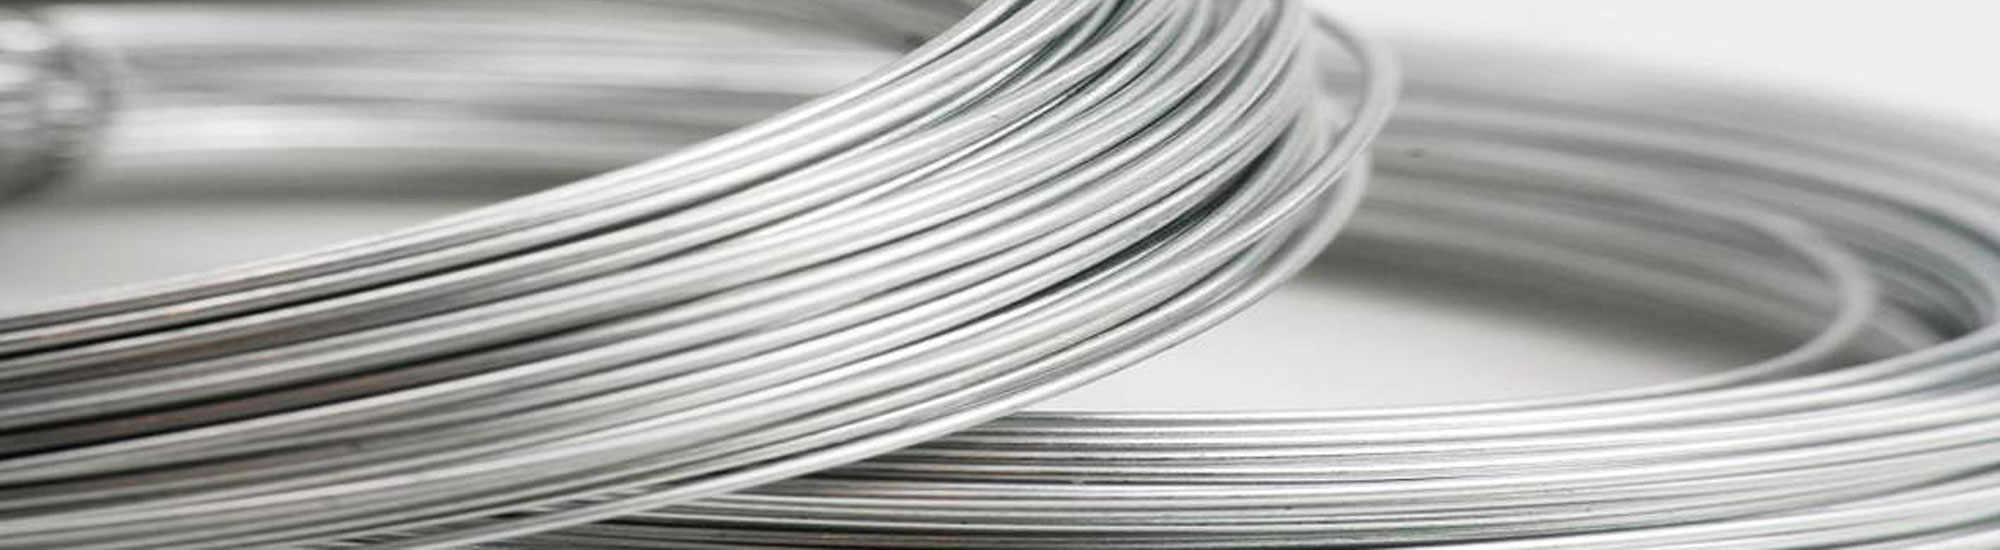 Stainless Steel Wire Stockist